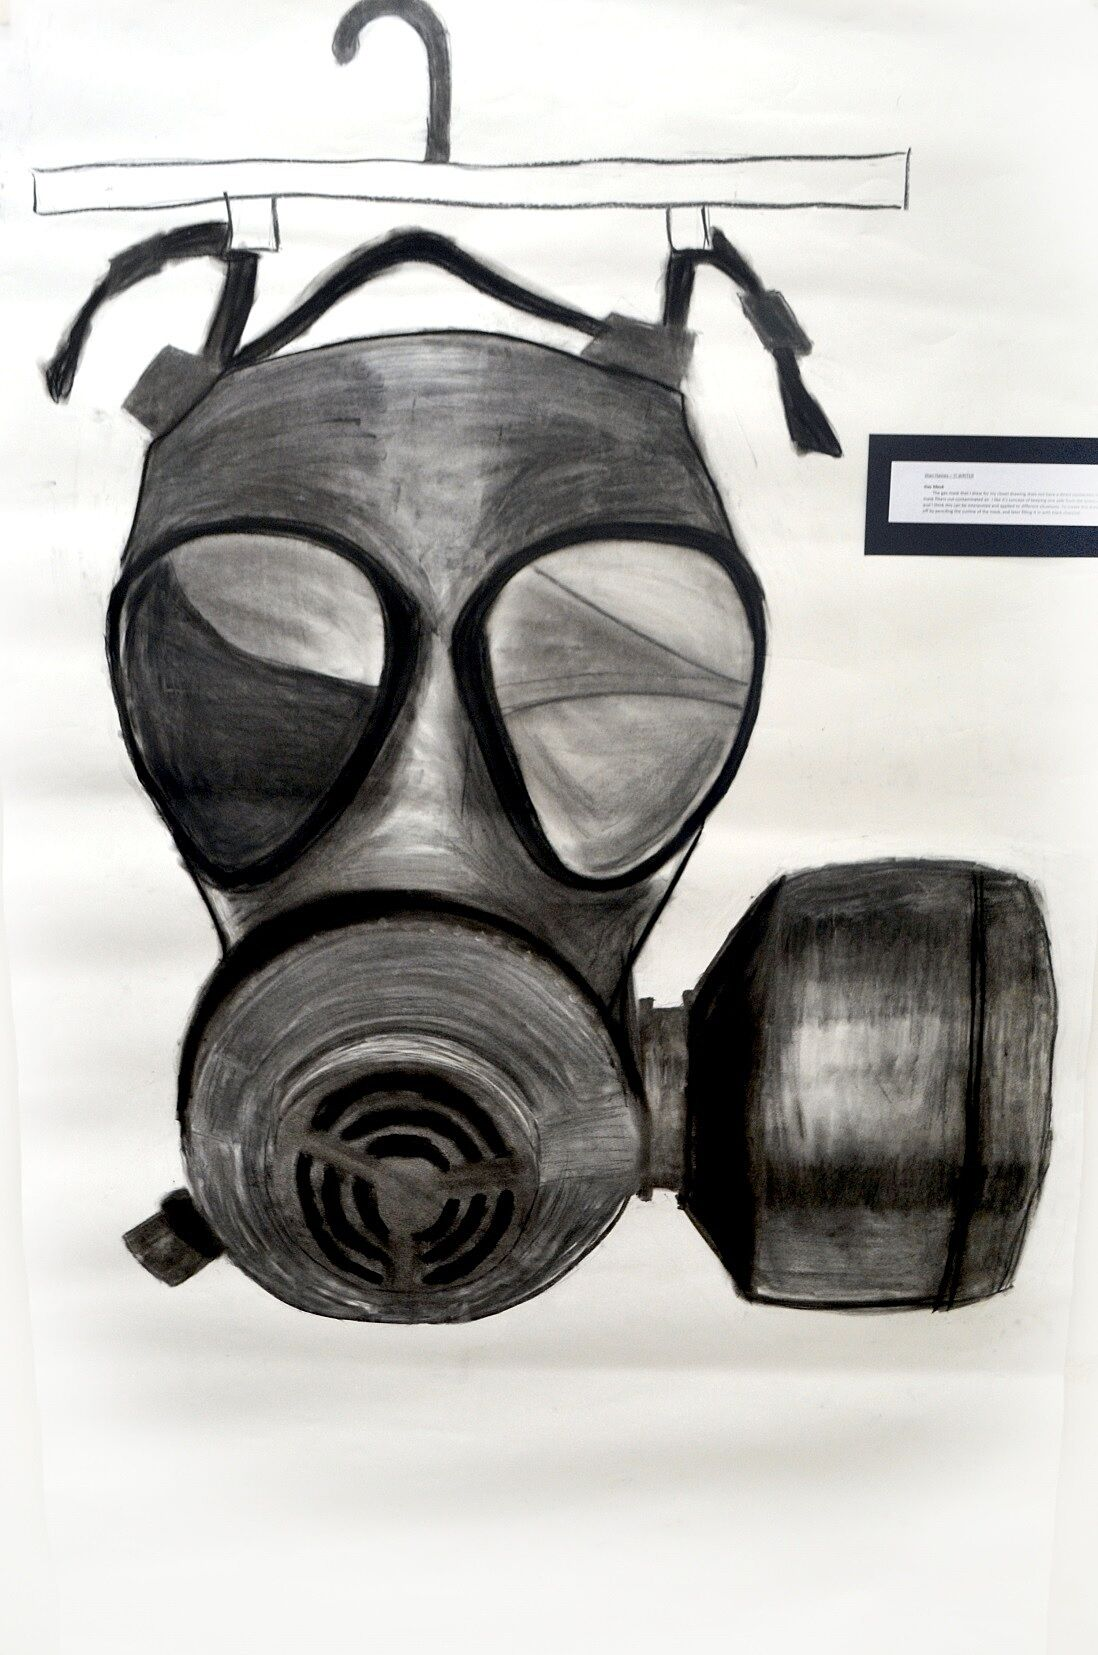 Jitan contributes a gas mask to the closet, May 2013.